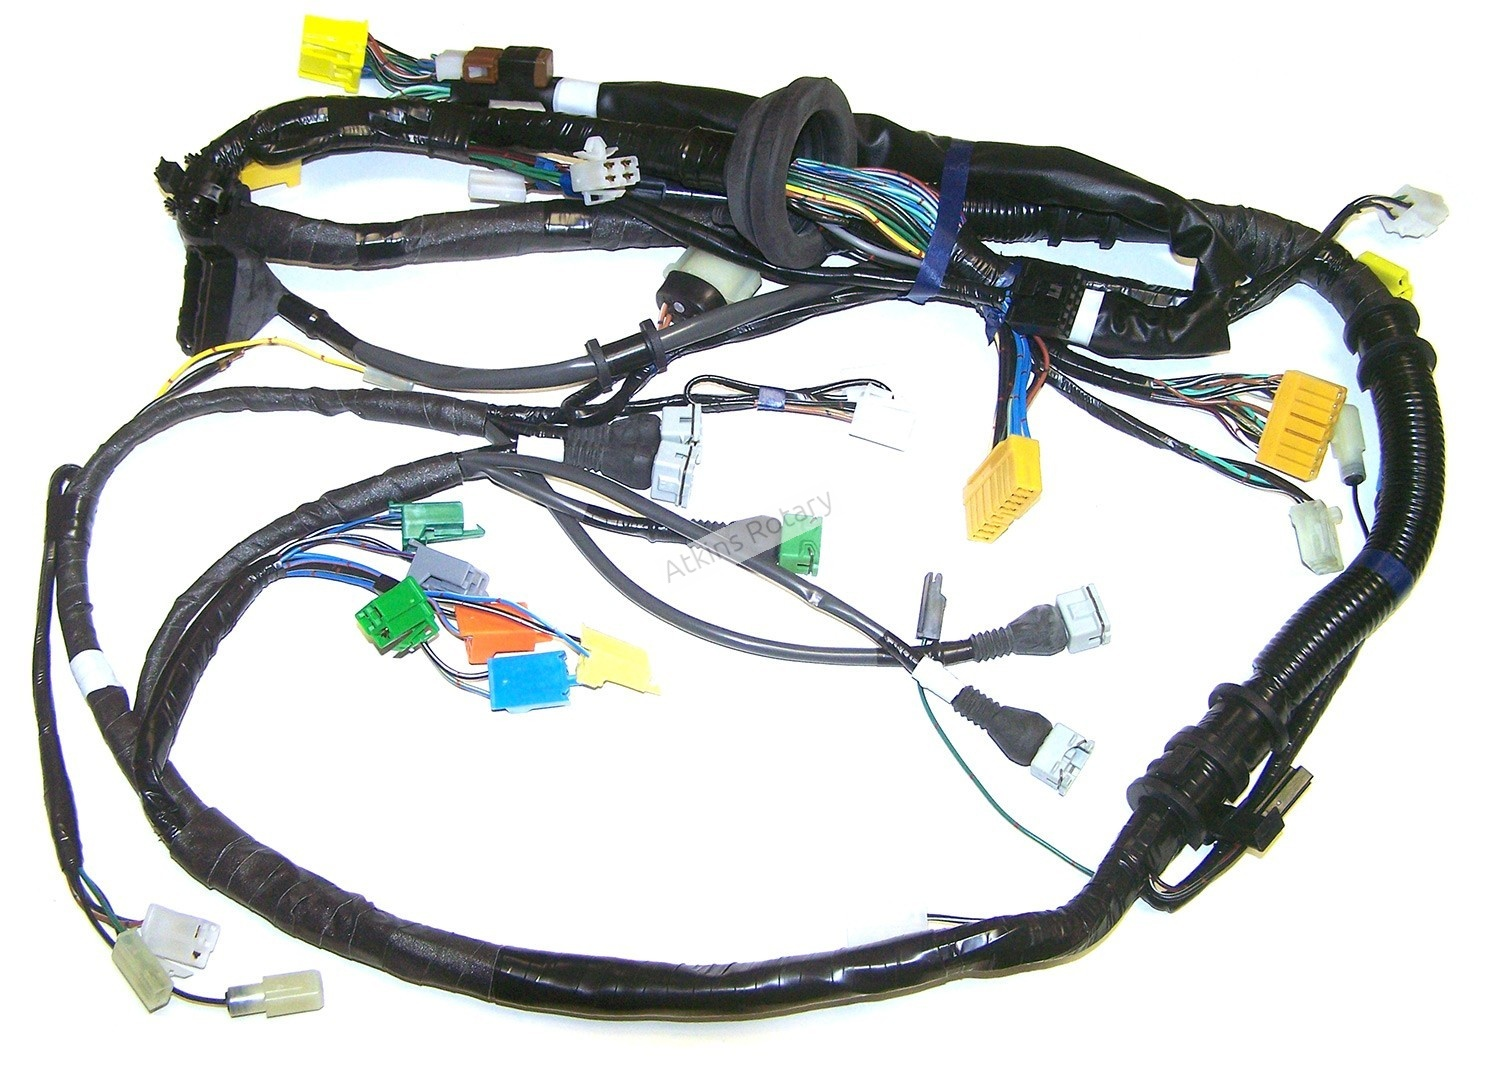 hummvi wiring harness engine scamatics 1971 plymouth wiring harness engine 87-88 turbo rx7 engine wiring harness (n332-18-051k) #9